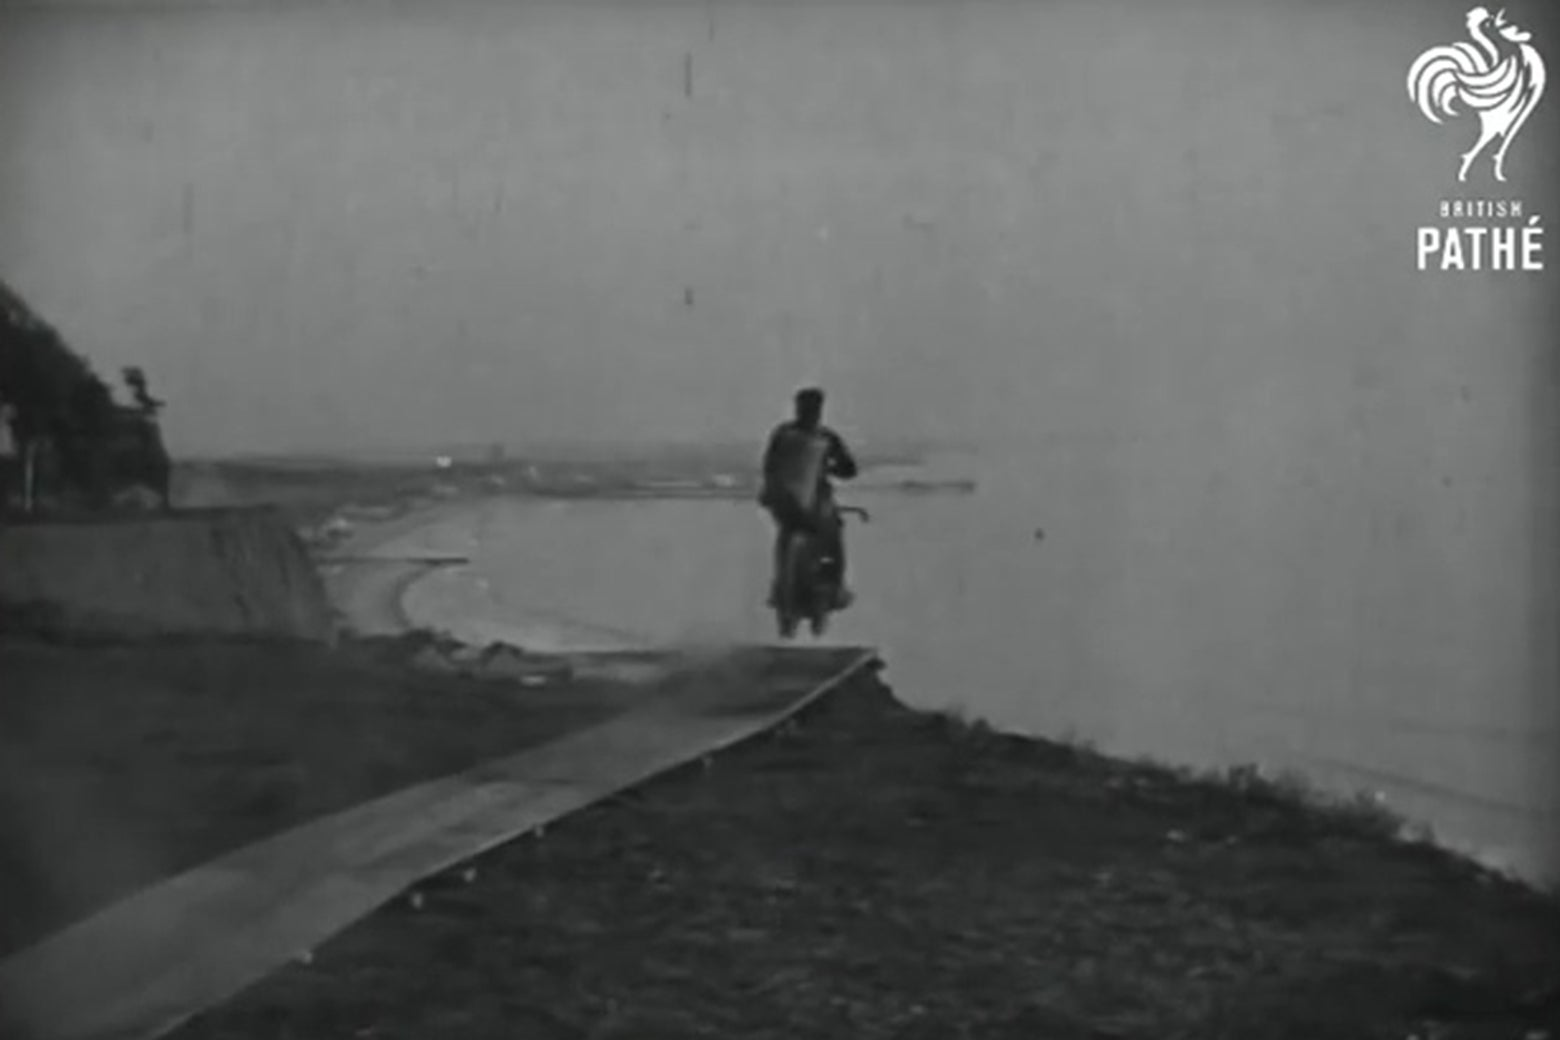 In a still frame from a 1926 newsreel, a man on a motorcycle flies off a cliff.